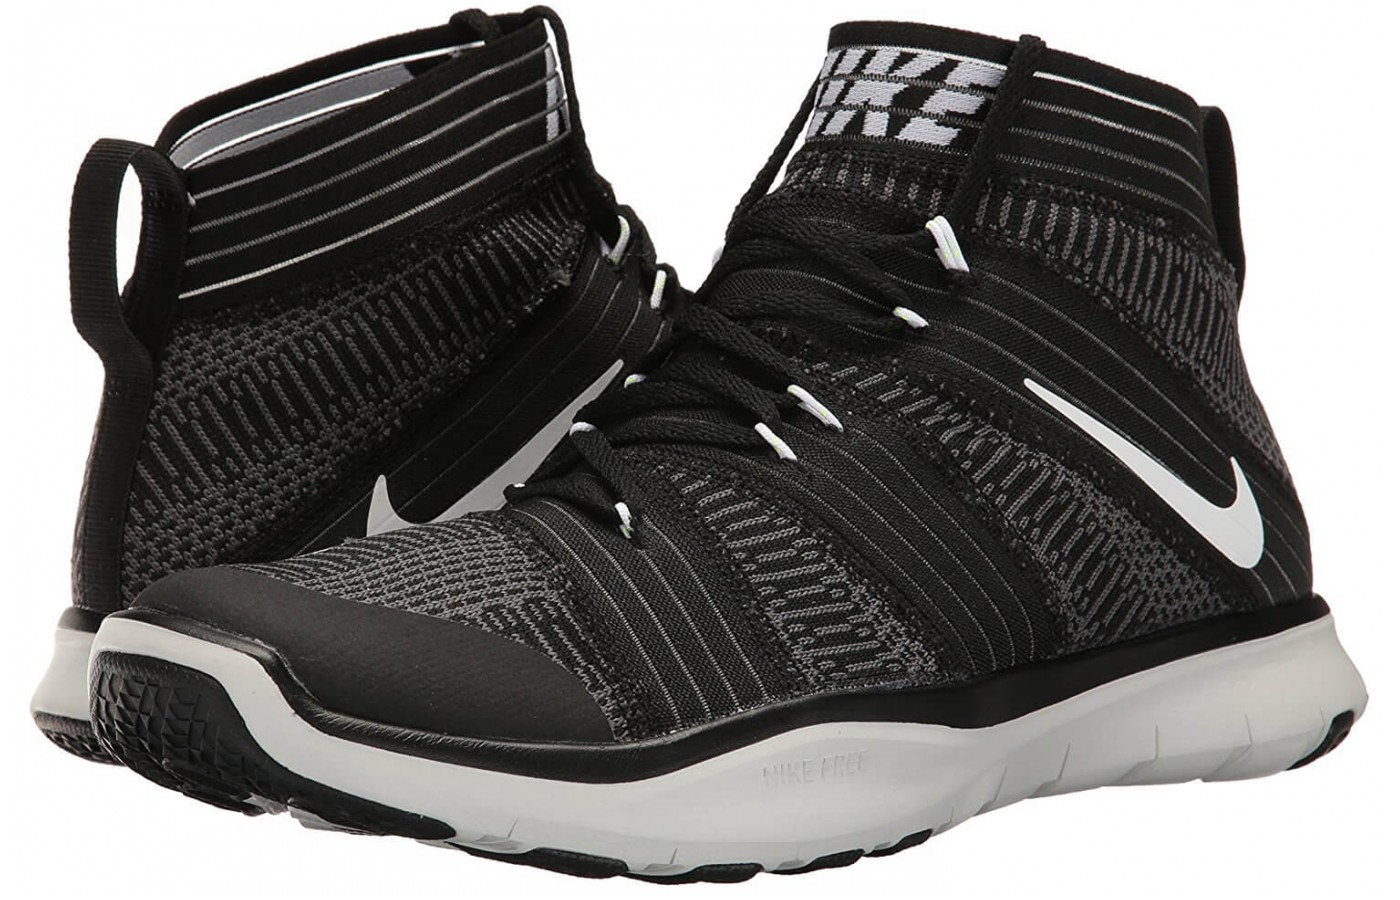 The Nike Free Train Virtue's outsole is made of rubber